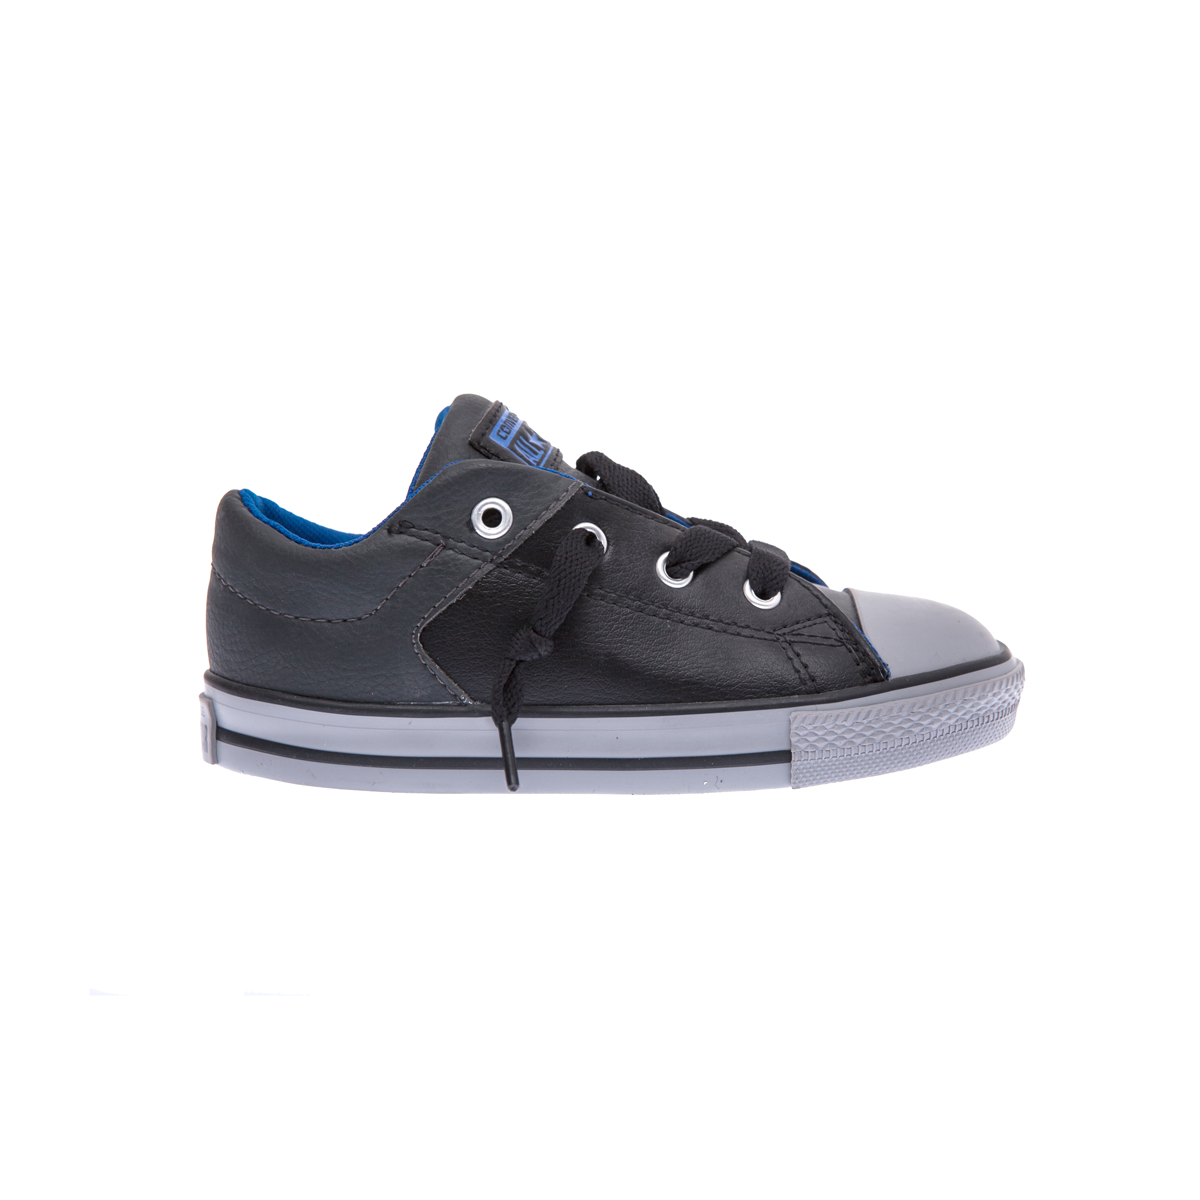 CONVERSE – Βρεφικά παπούτσια Chuck Taylor All Star High Str γκρι